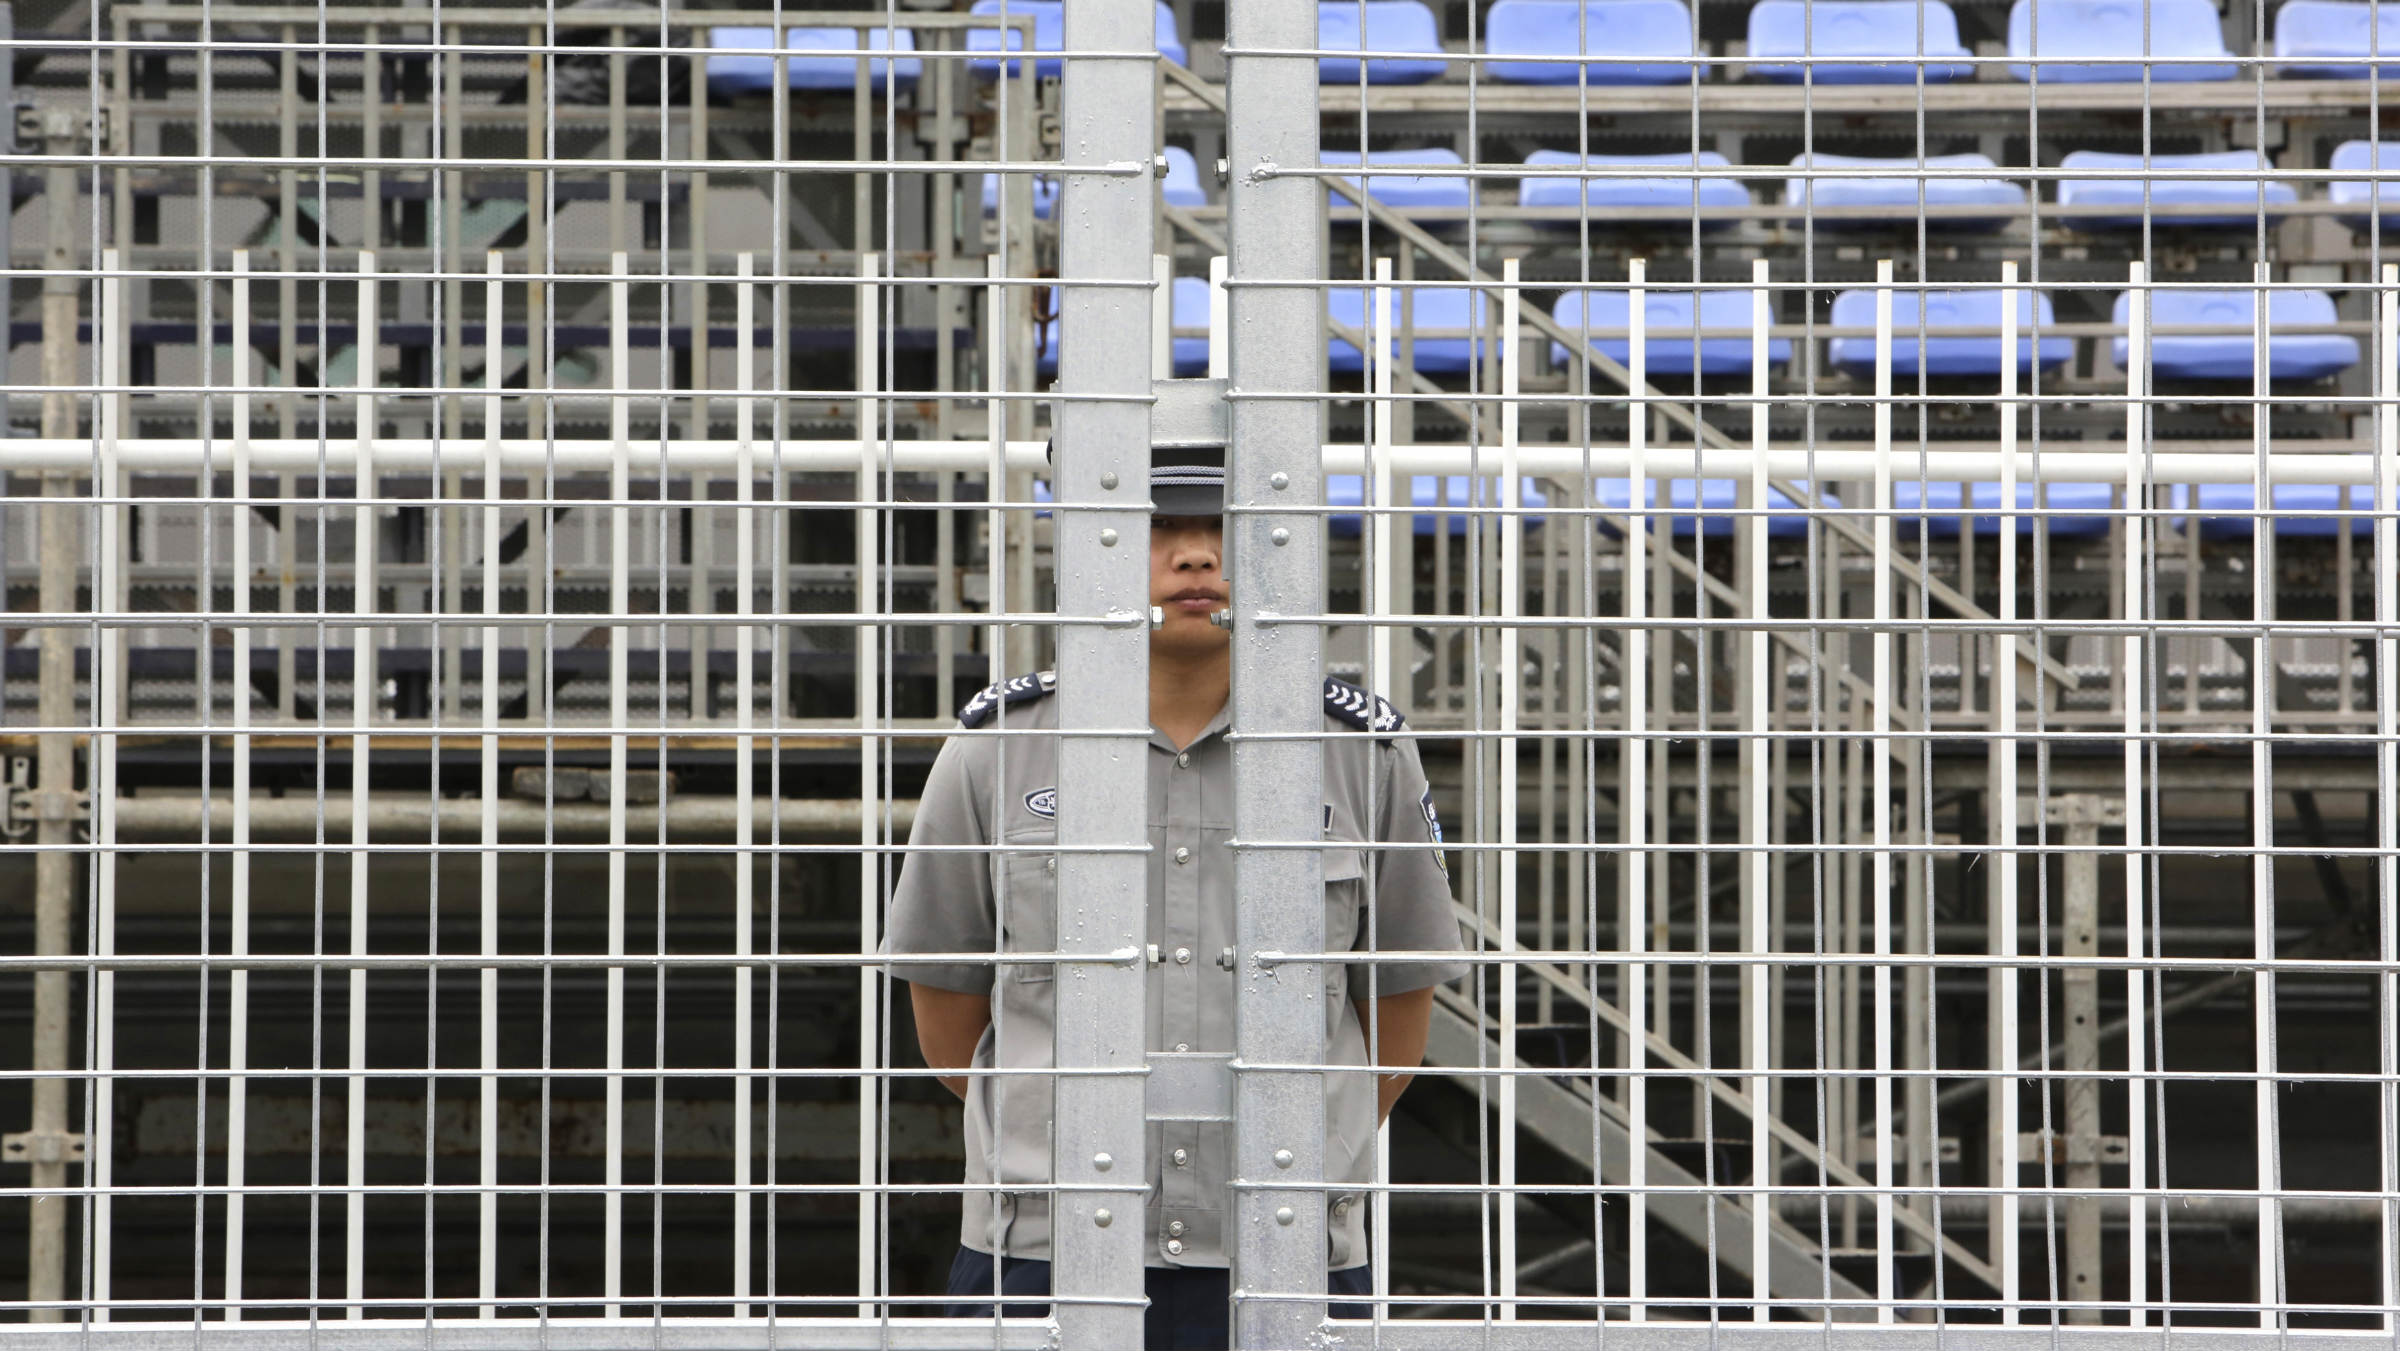 A security personnel stands guard behind a track fence ahead of the upcoming Formula E Championship race on Saturday in Beijing, September 12, 2014. The inaugural Formula E Championship, which according to its organisers is the world's first fully electric racing series, will be contested by 10 two-driver teams over 10 rounds. REUTERS/Jason Lee (CHINA - Tags: SPORT SCIENCE TECHNOLOGY MOTORSPORT)